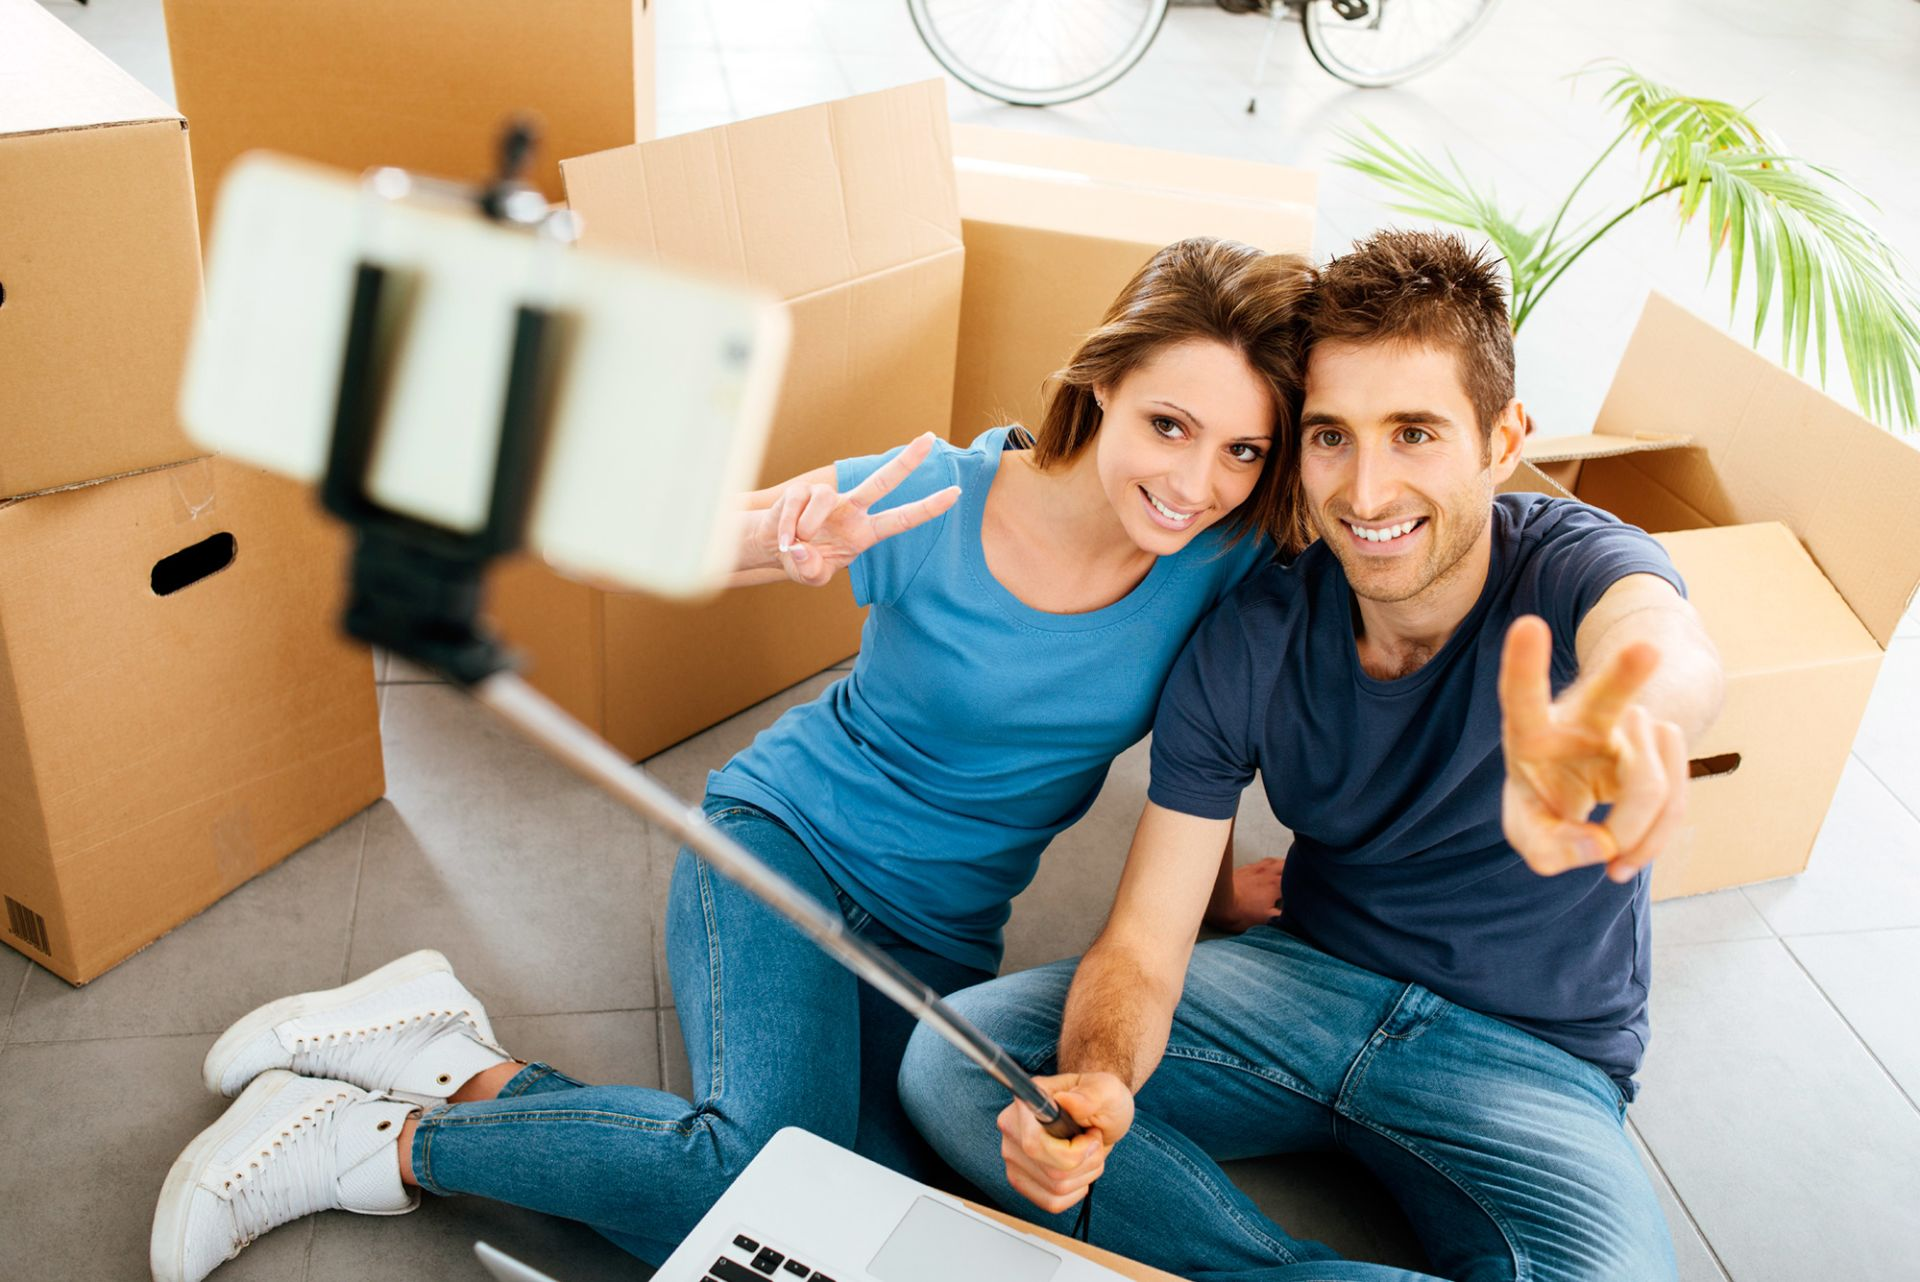 When millennials buy homes, they invest in them differently